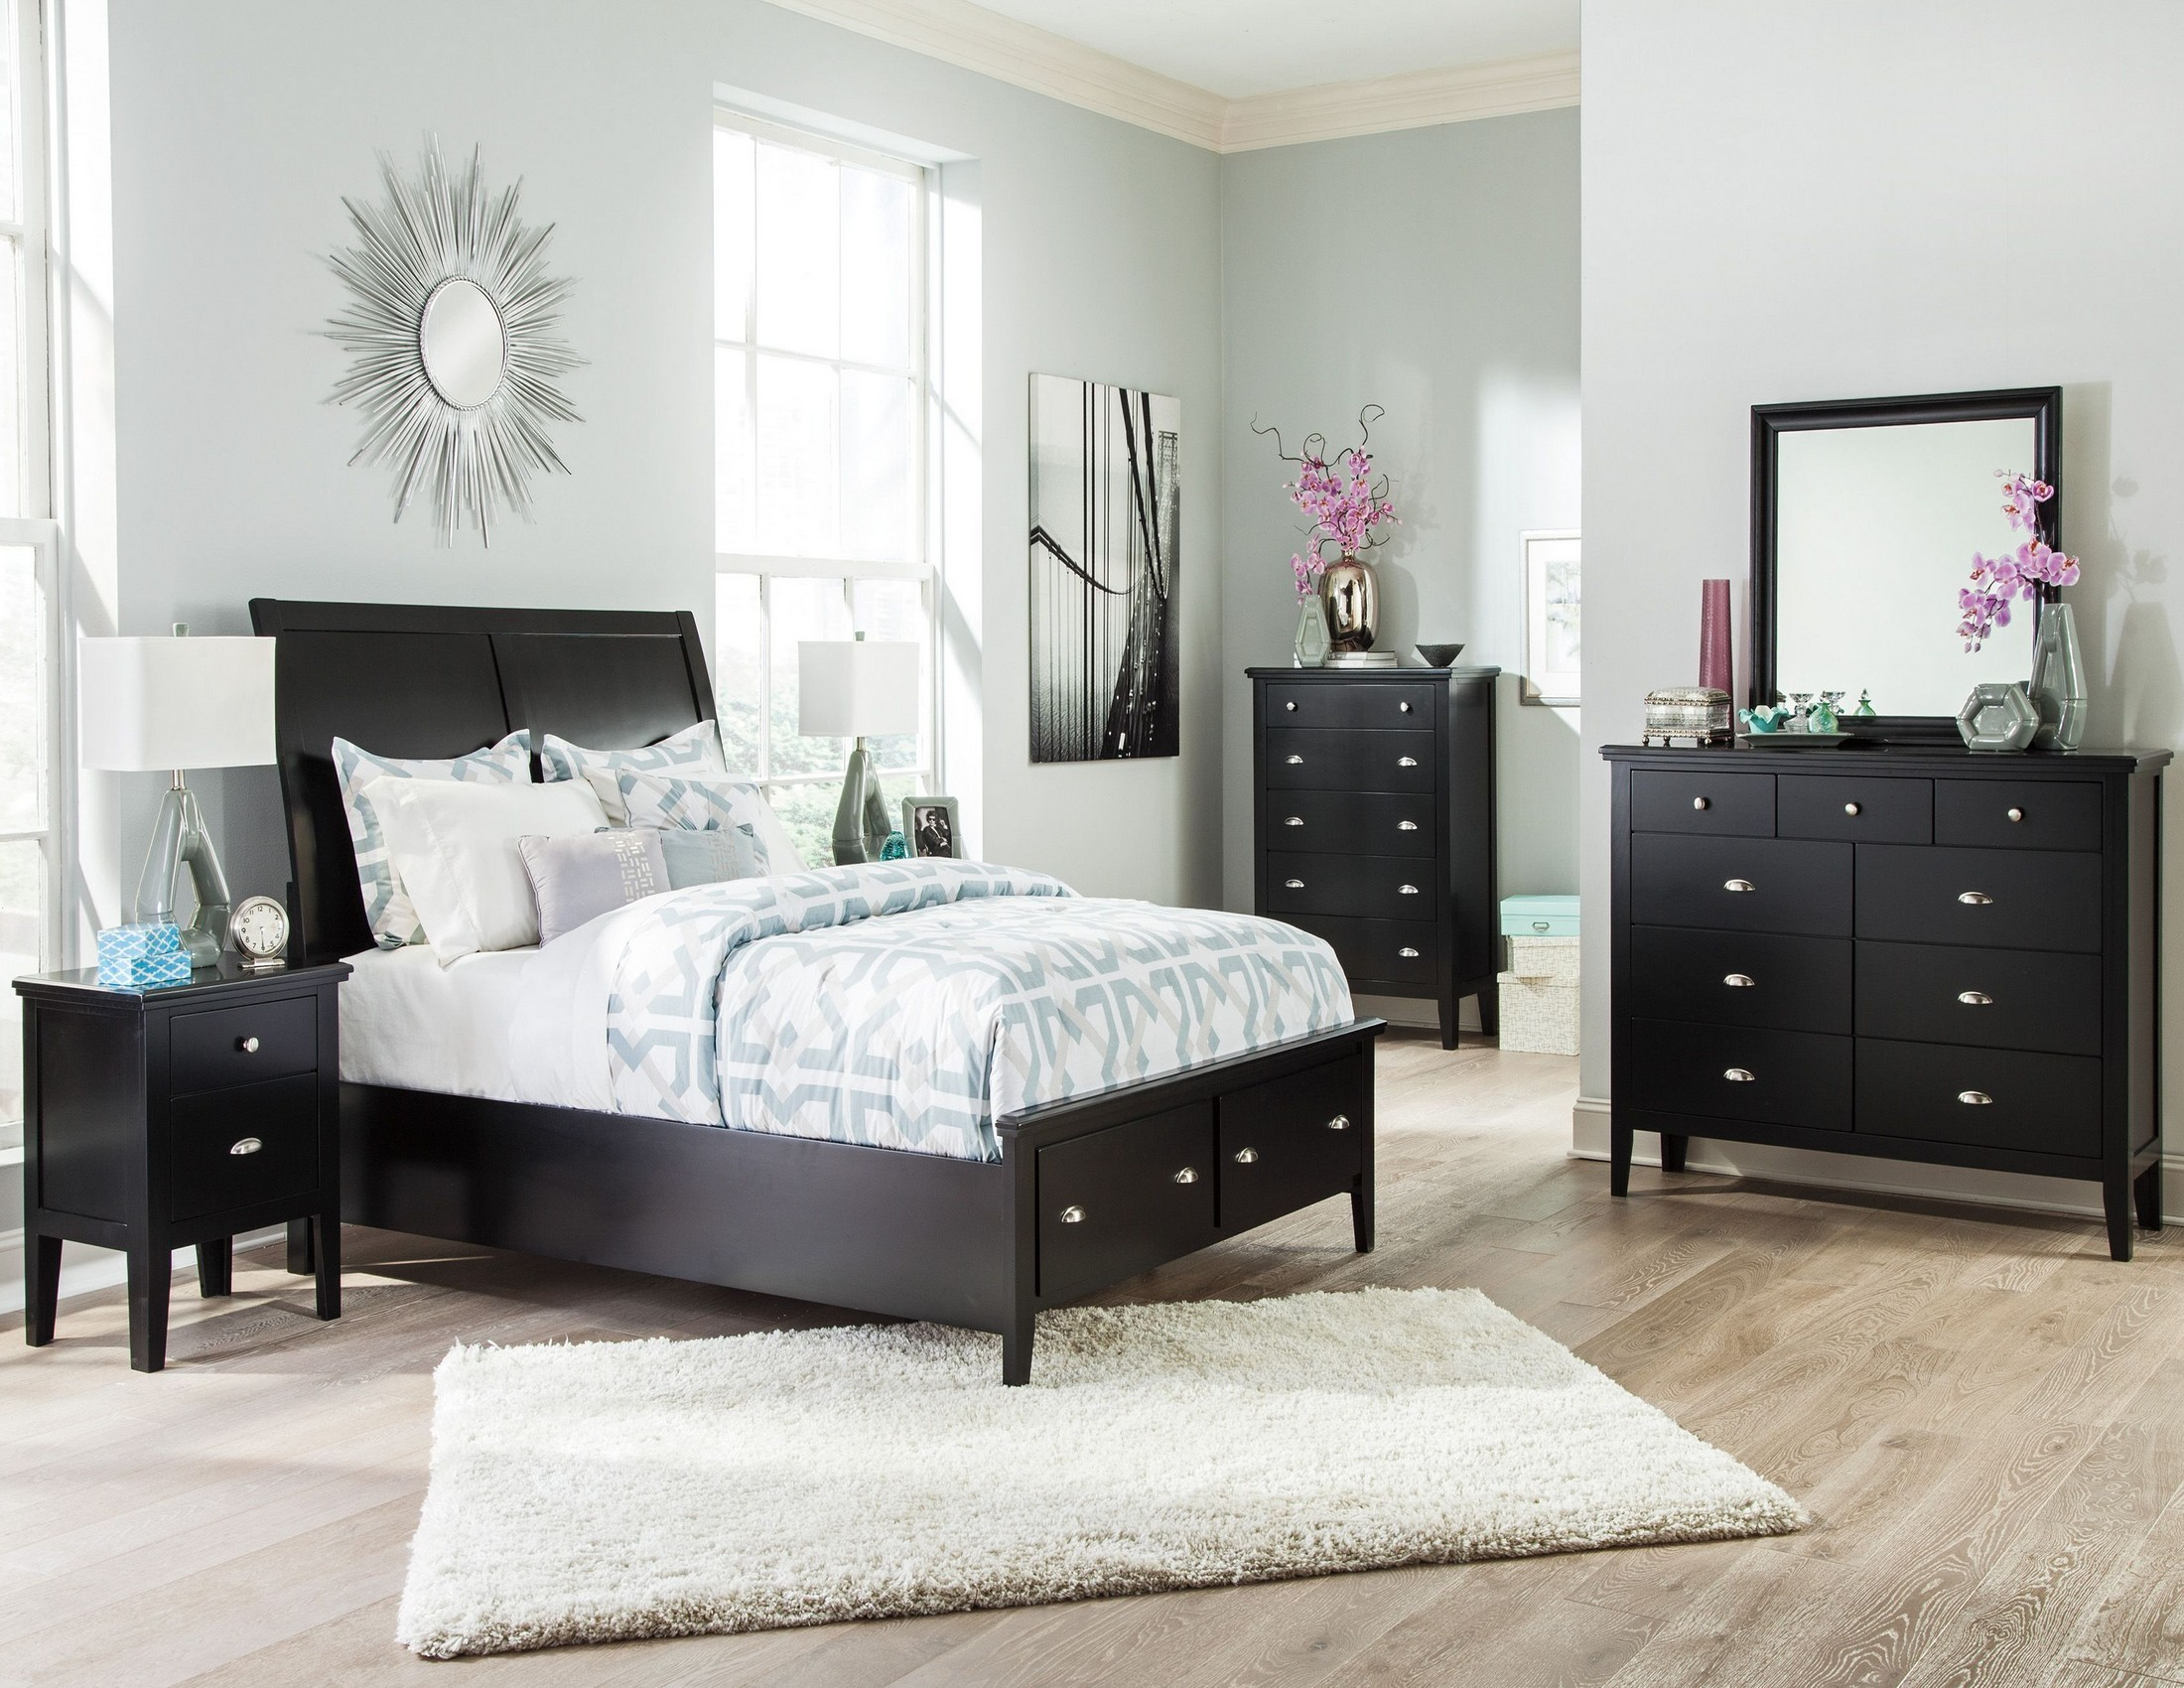 Braflin Sleigh Storage Bedroom Set From Ashley (b59157